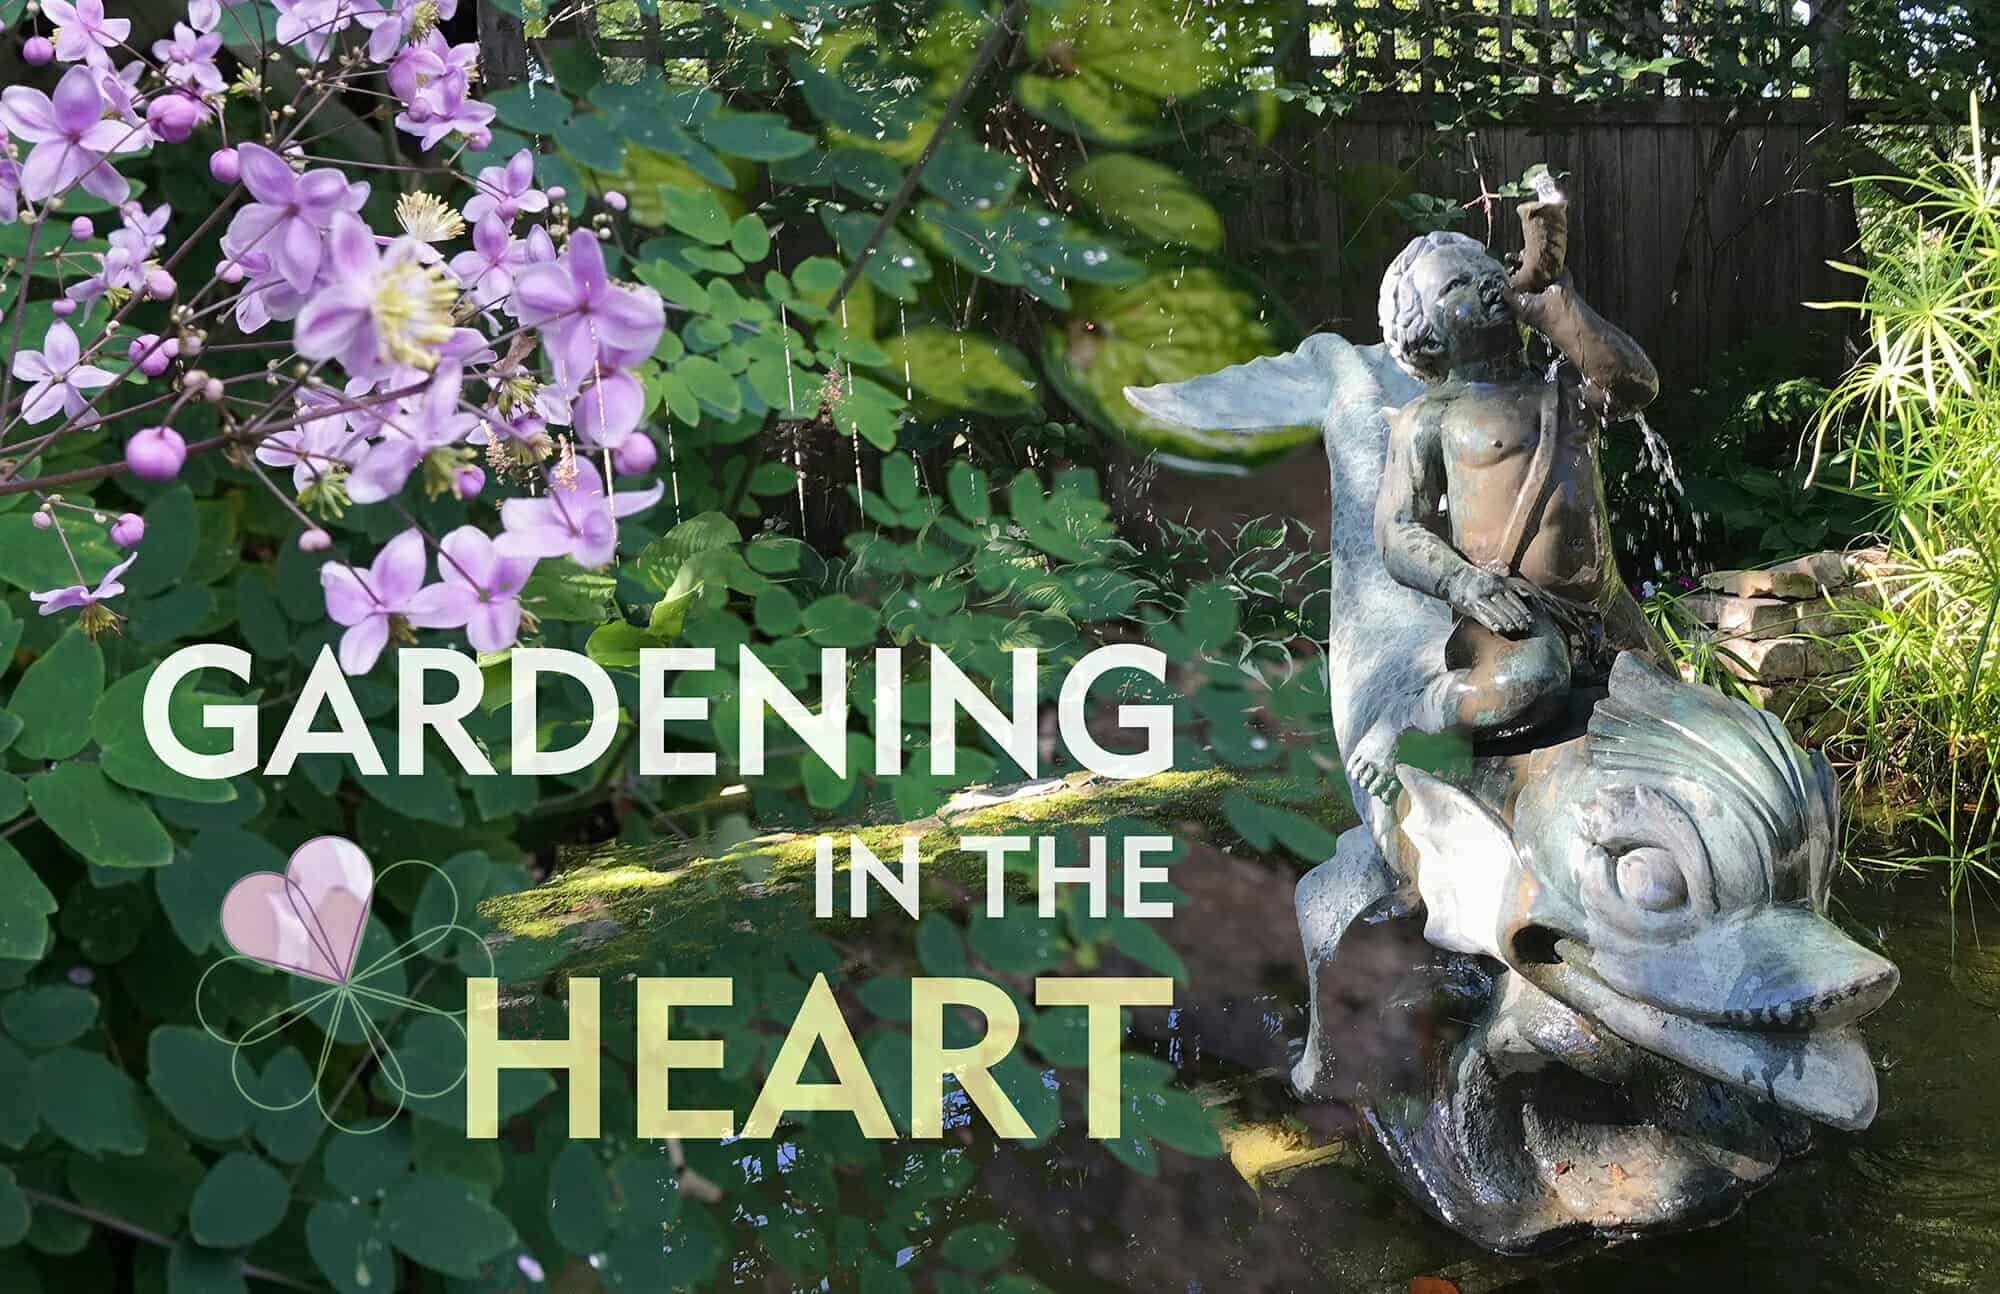 """Chat with the gardeners of the """"Gardening in the Heart"""" videos"""